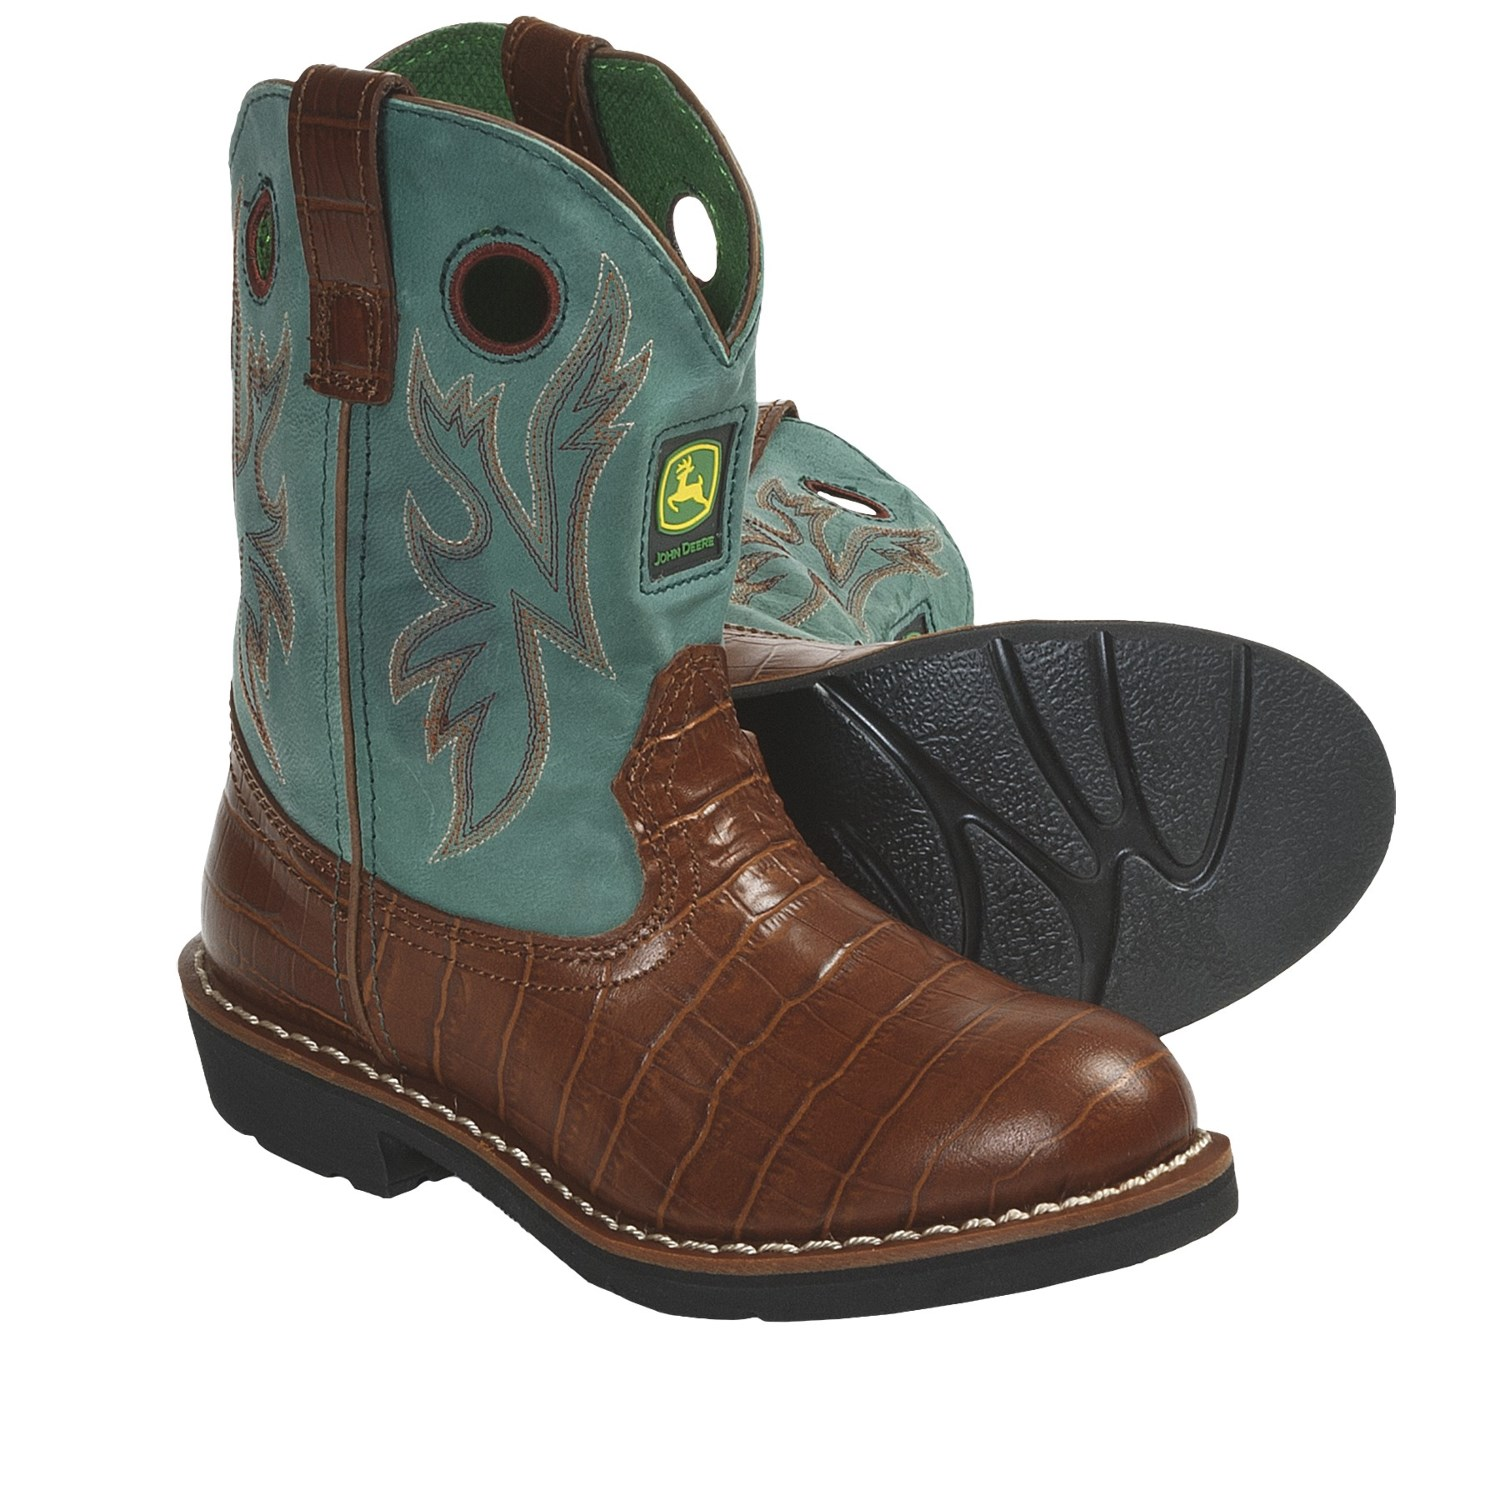 deere footwear croco print cowboy boots for youth